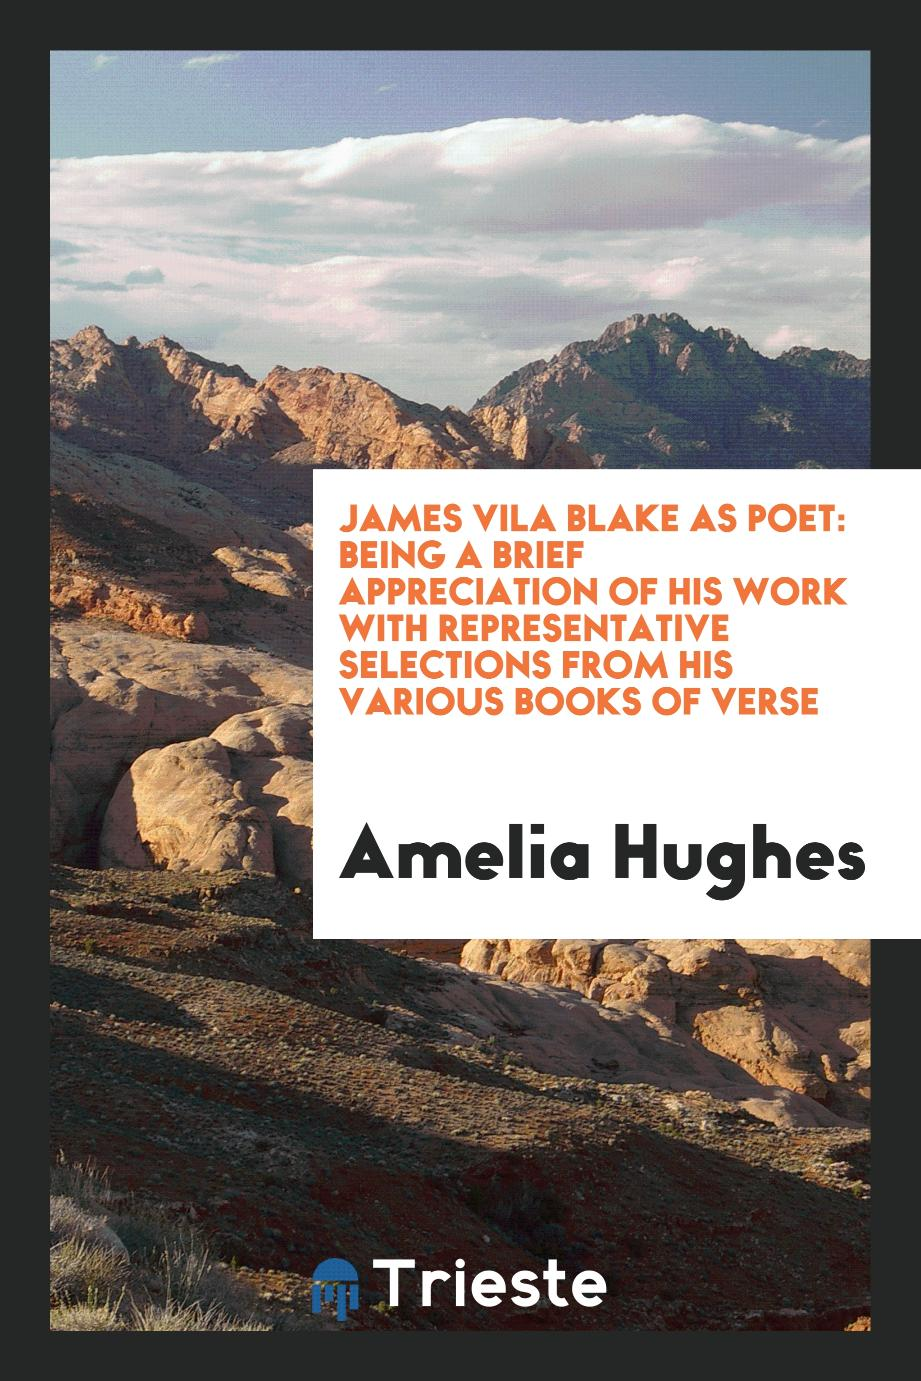 Amelia Hughes - James Vila Blake as poet: being a brief appreciation of his work with representative selections from his various books of verse